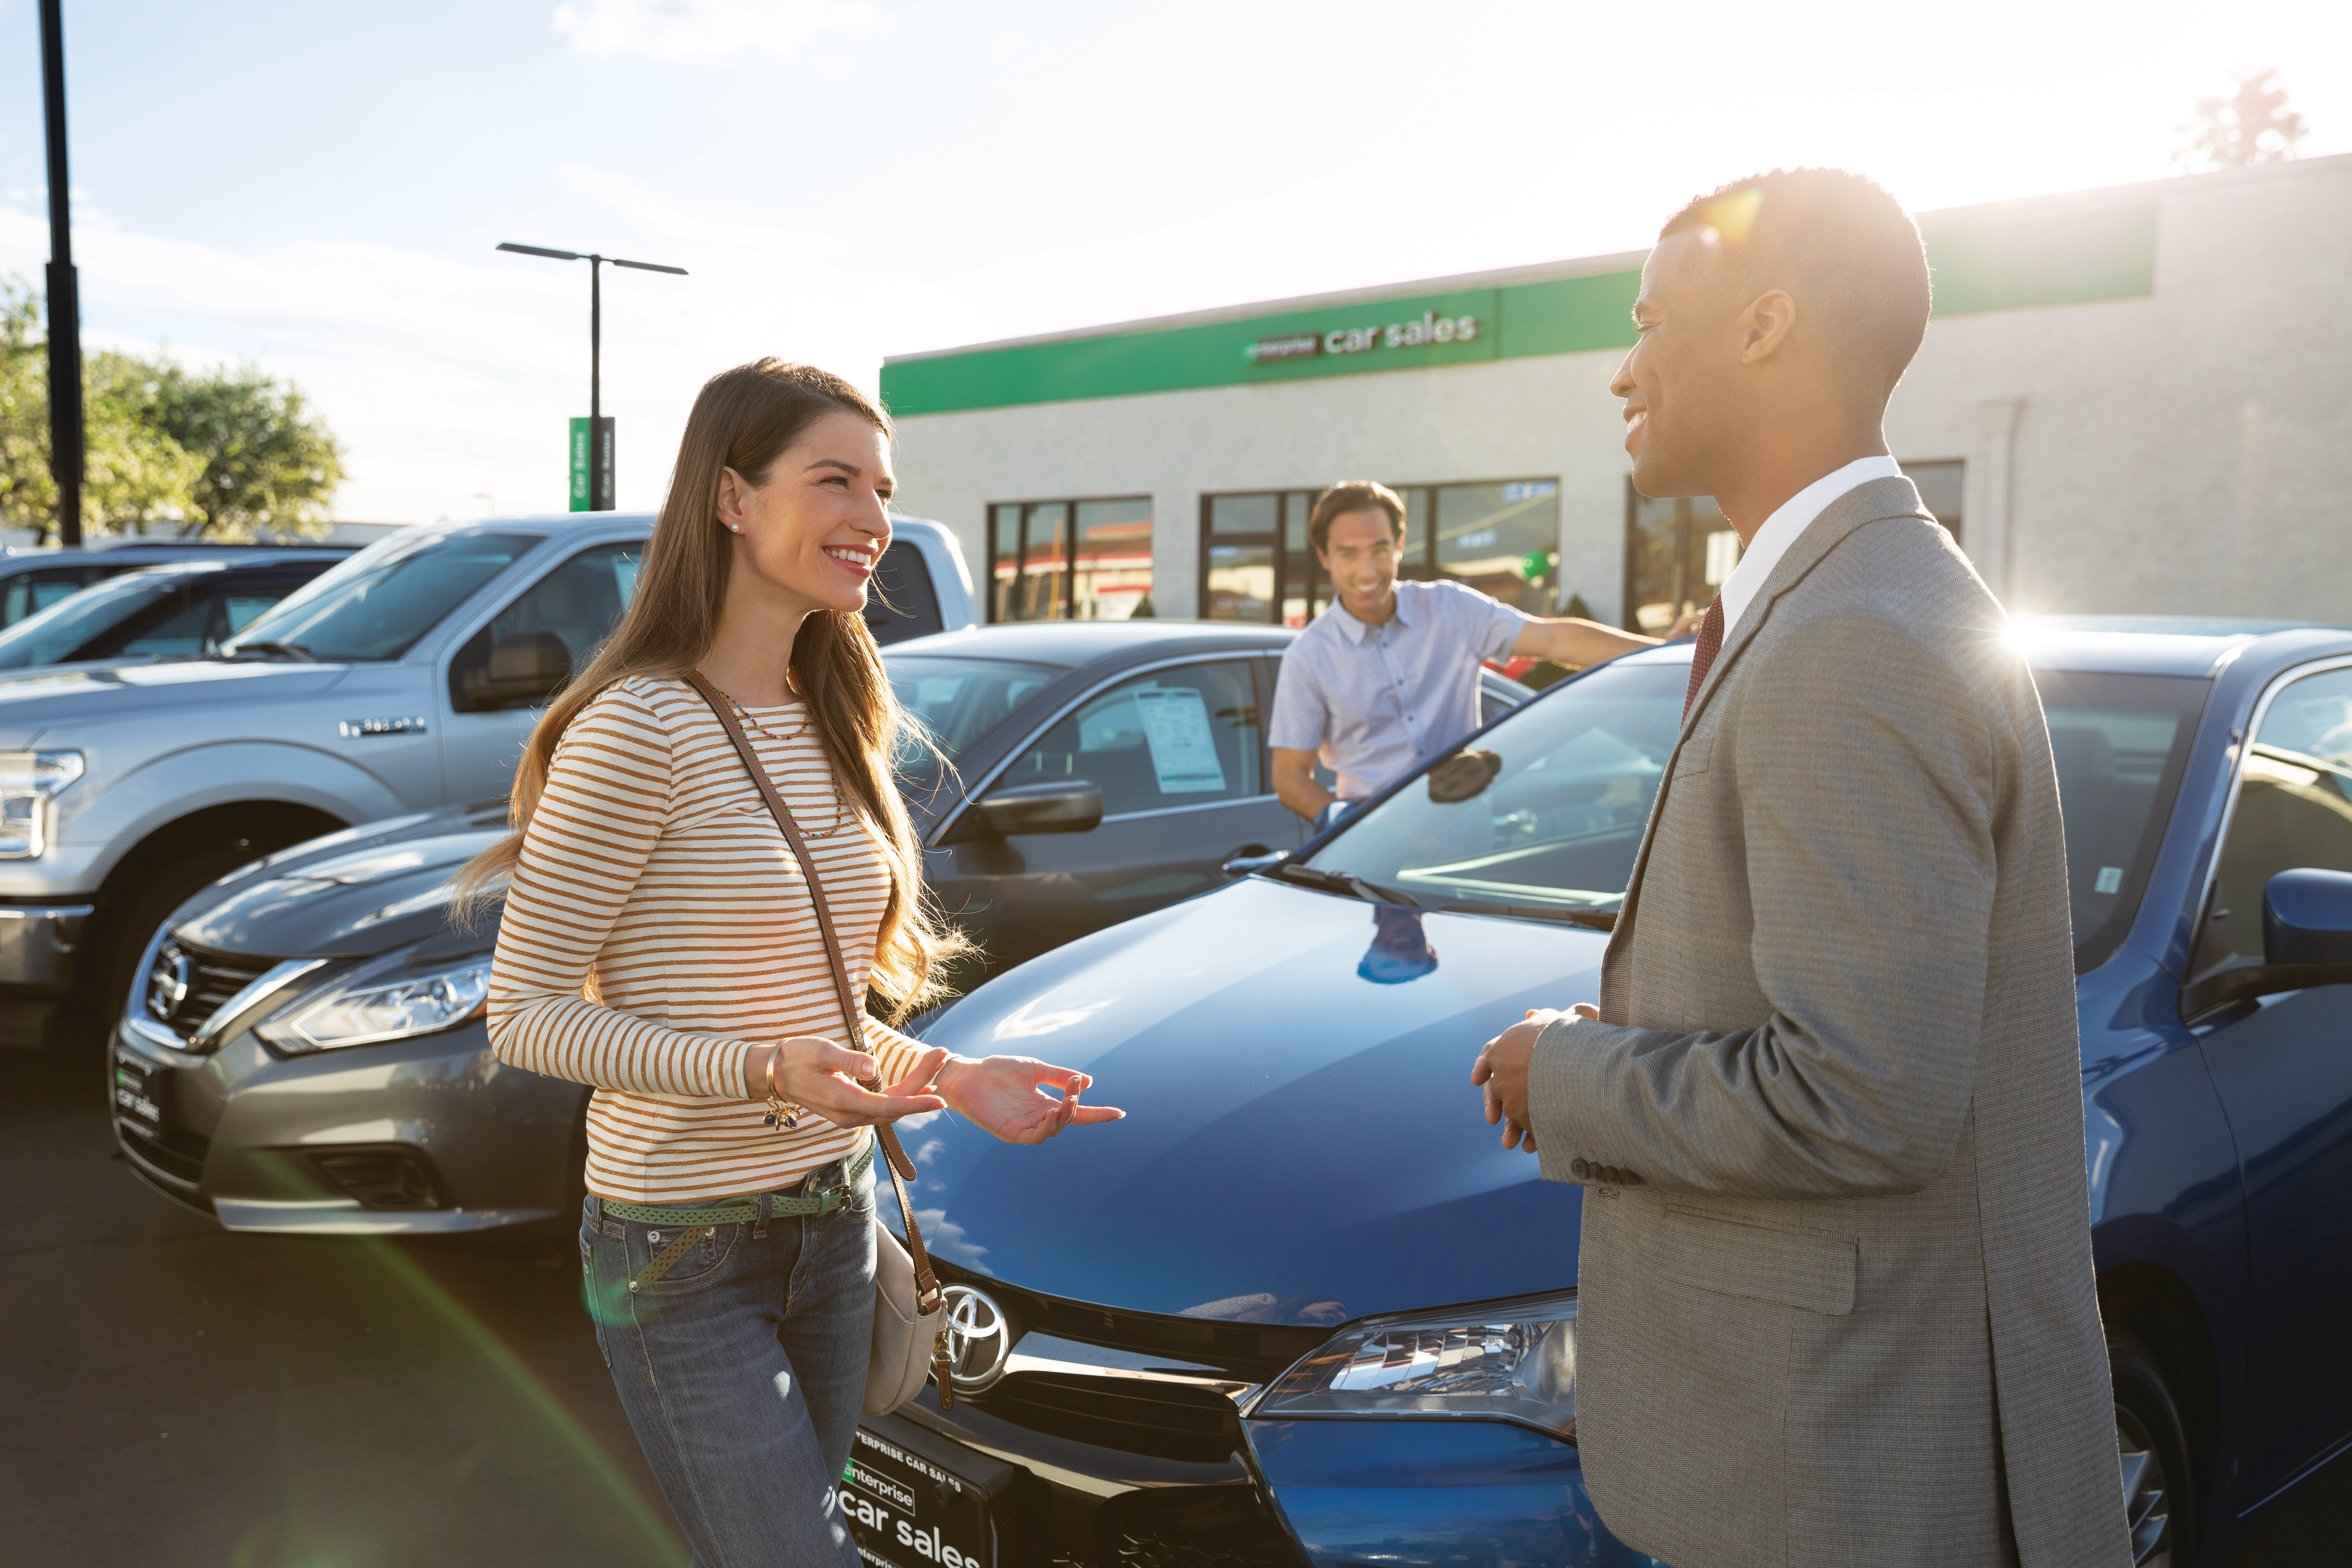 Enterprise Used Cars Luxury Learn More About Enterprise Certified Used Cars